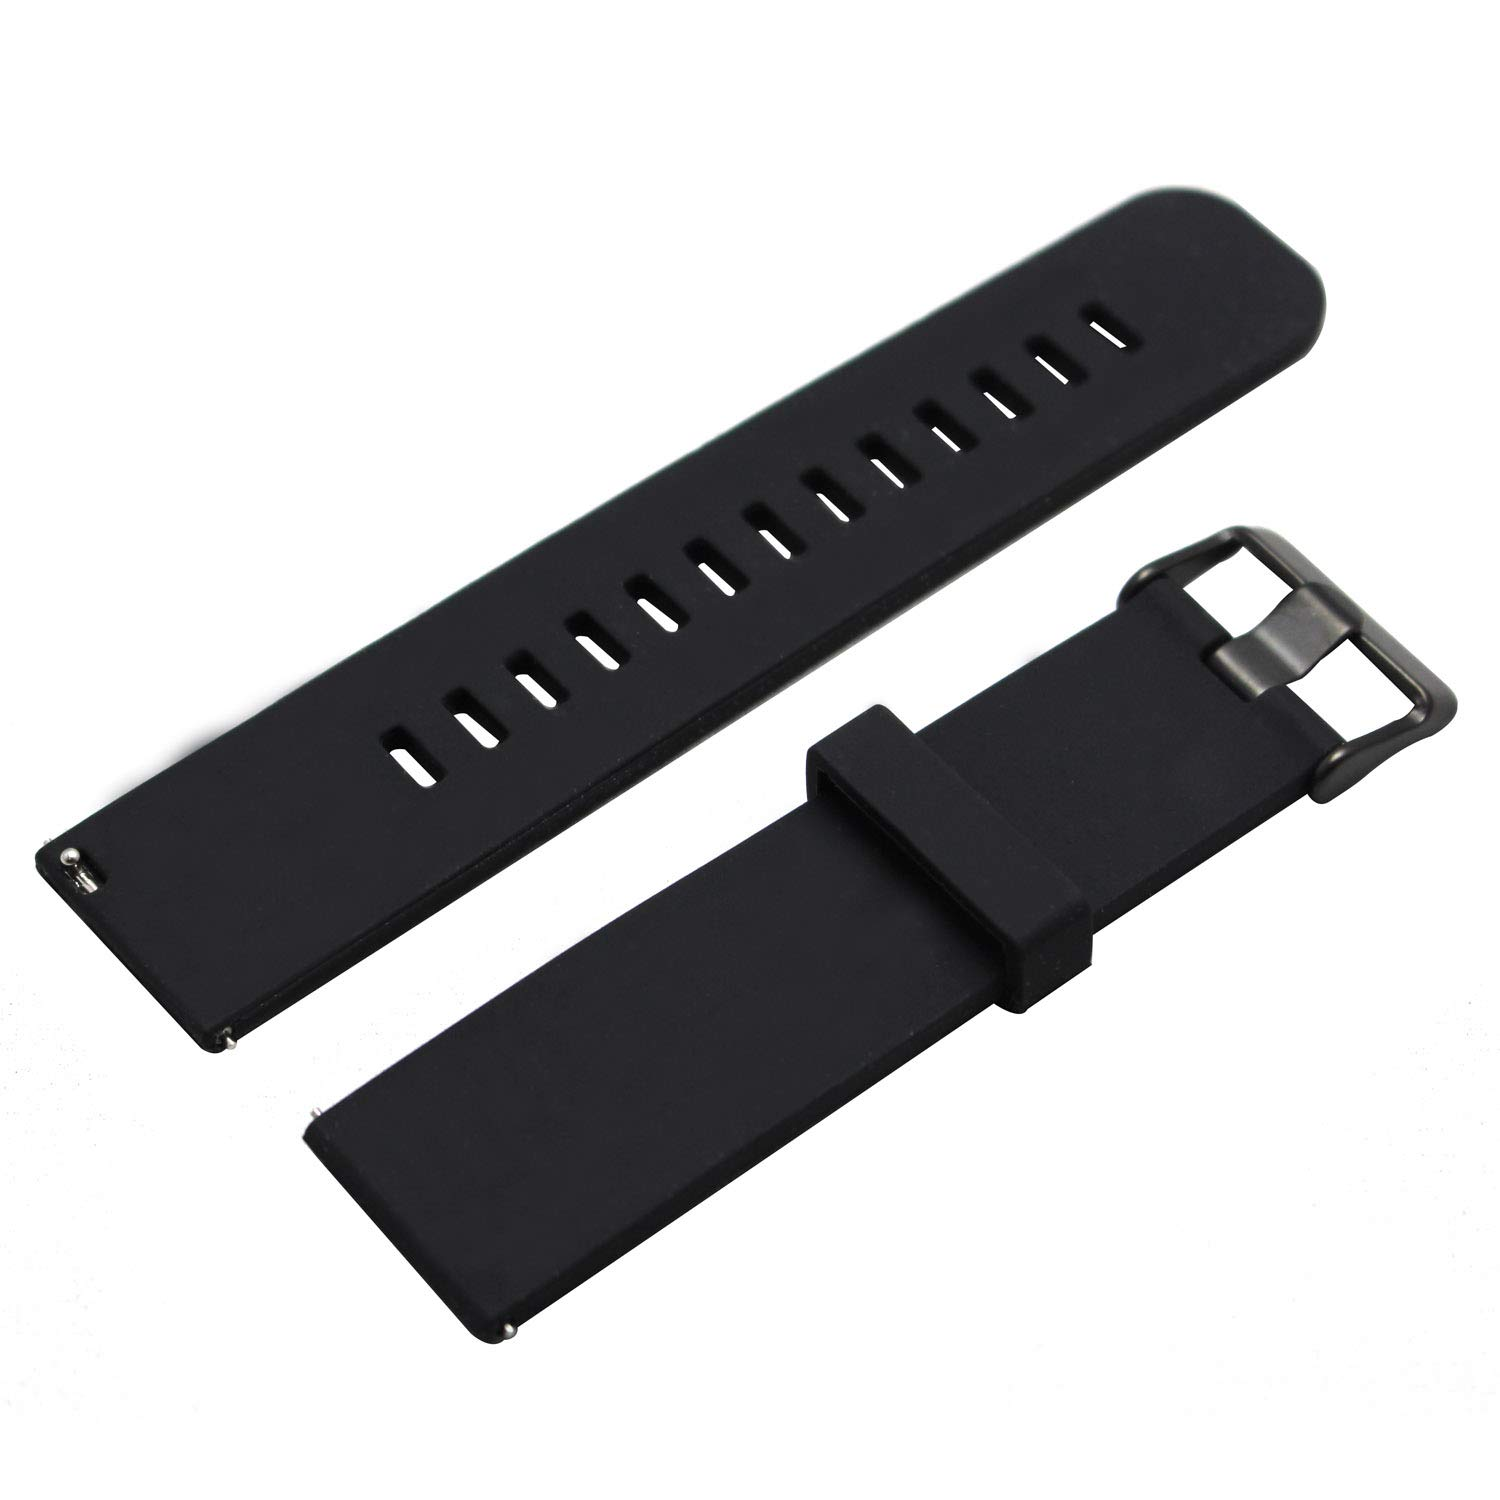 official photos 10fb8 fe81e RAYSUN Replacement Anti-slip Waterproof Silicone Watch Band Strap for LG G  Watch W100 W110 Urbane W150 Samsung Gear 2 R380 Gear 2 Neo R381 Gear 2 Live  ...